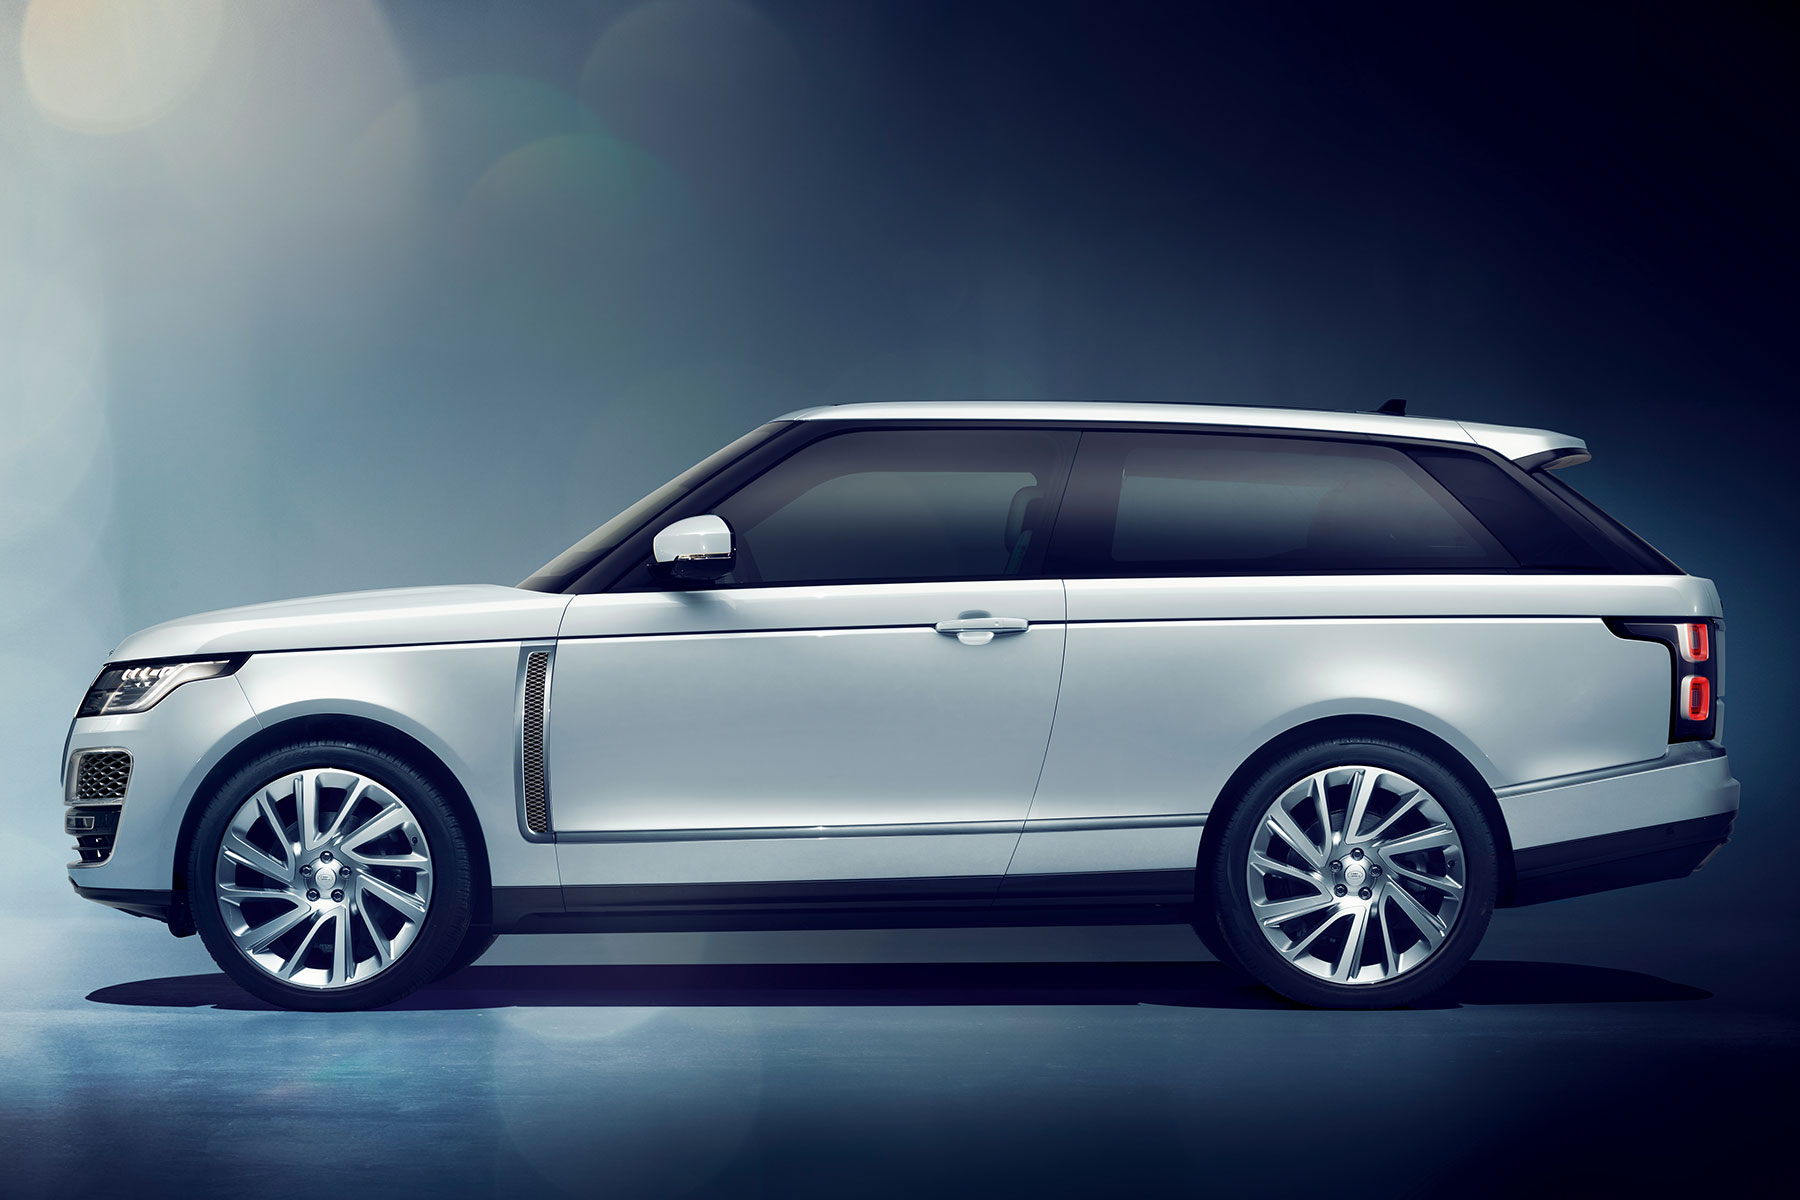 range rover takes on rolls royce with 240k sv coupe. Black Bedroom Furniture Sets. Home Design Ideas